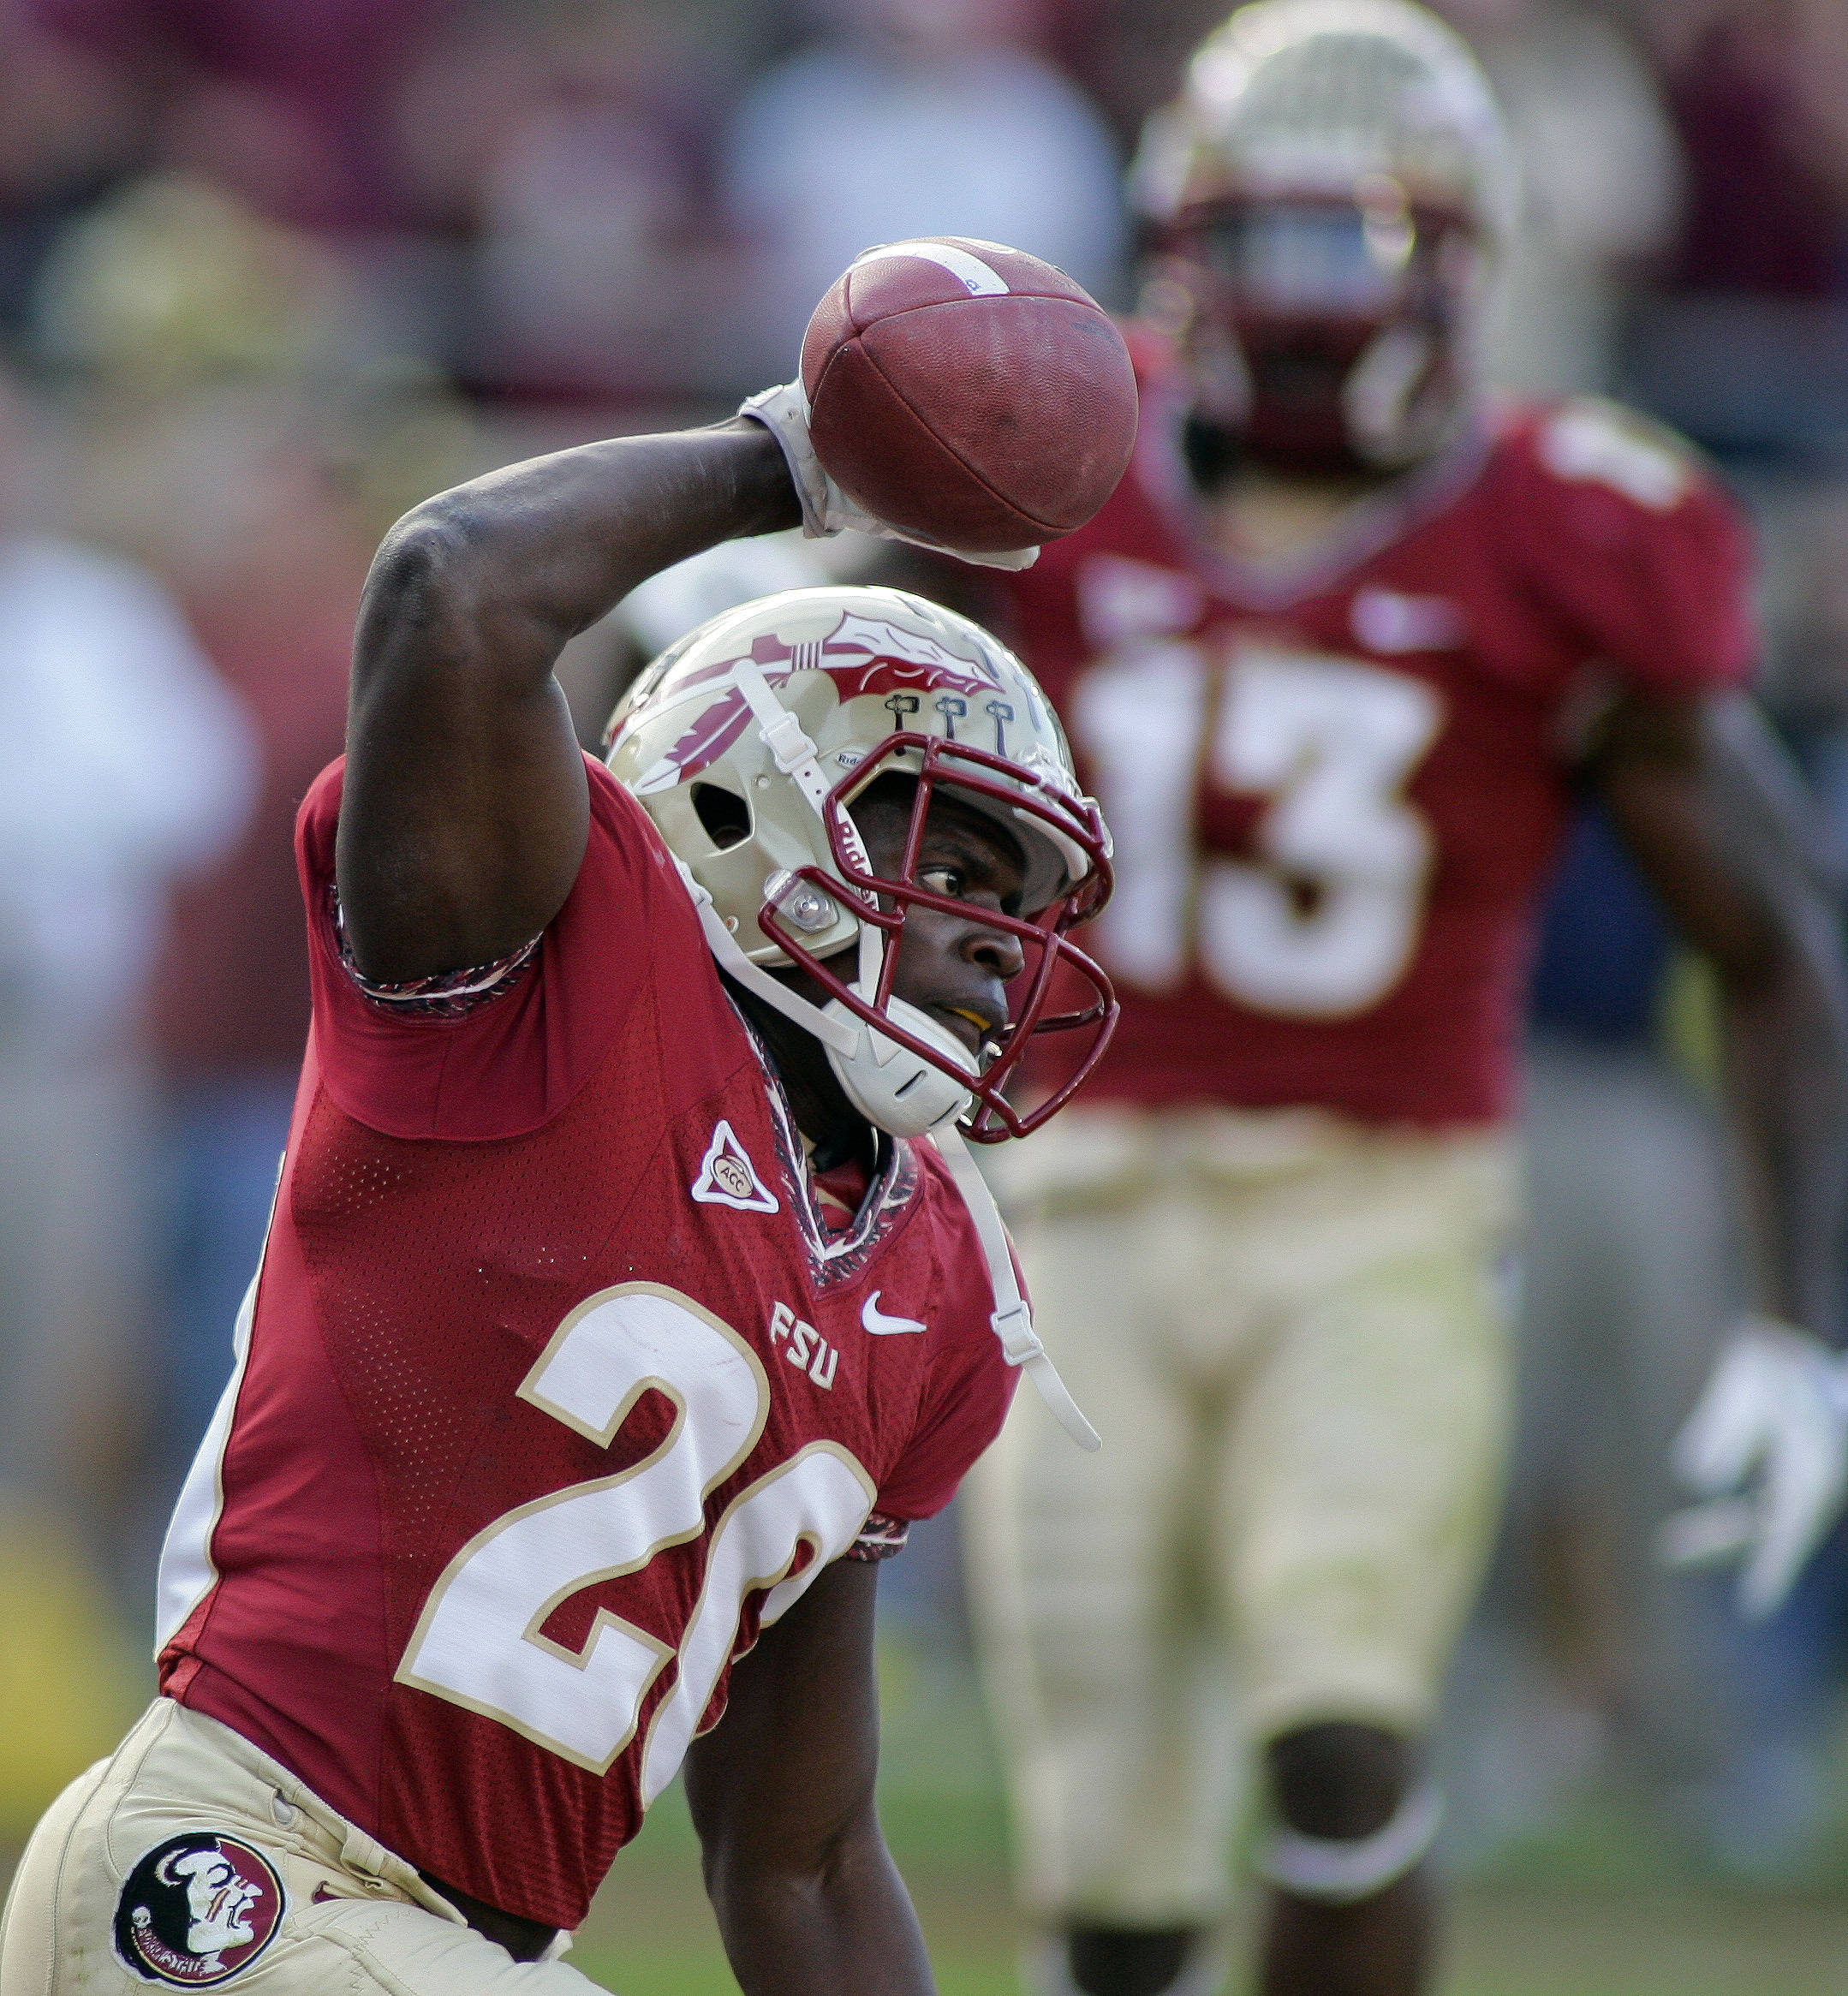 Florida State safety Lamarcus Joyner (20) spikes the ball after making an interception in the end zone during the first quarter of an NCAA college football game against Miami on Saturday, Nov. 12, 2011, in Tallahassee, Fla. Joyner was penalized on the play. (AP Photo/Phil Sears)